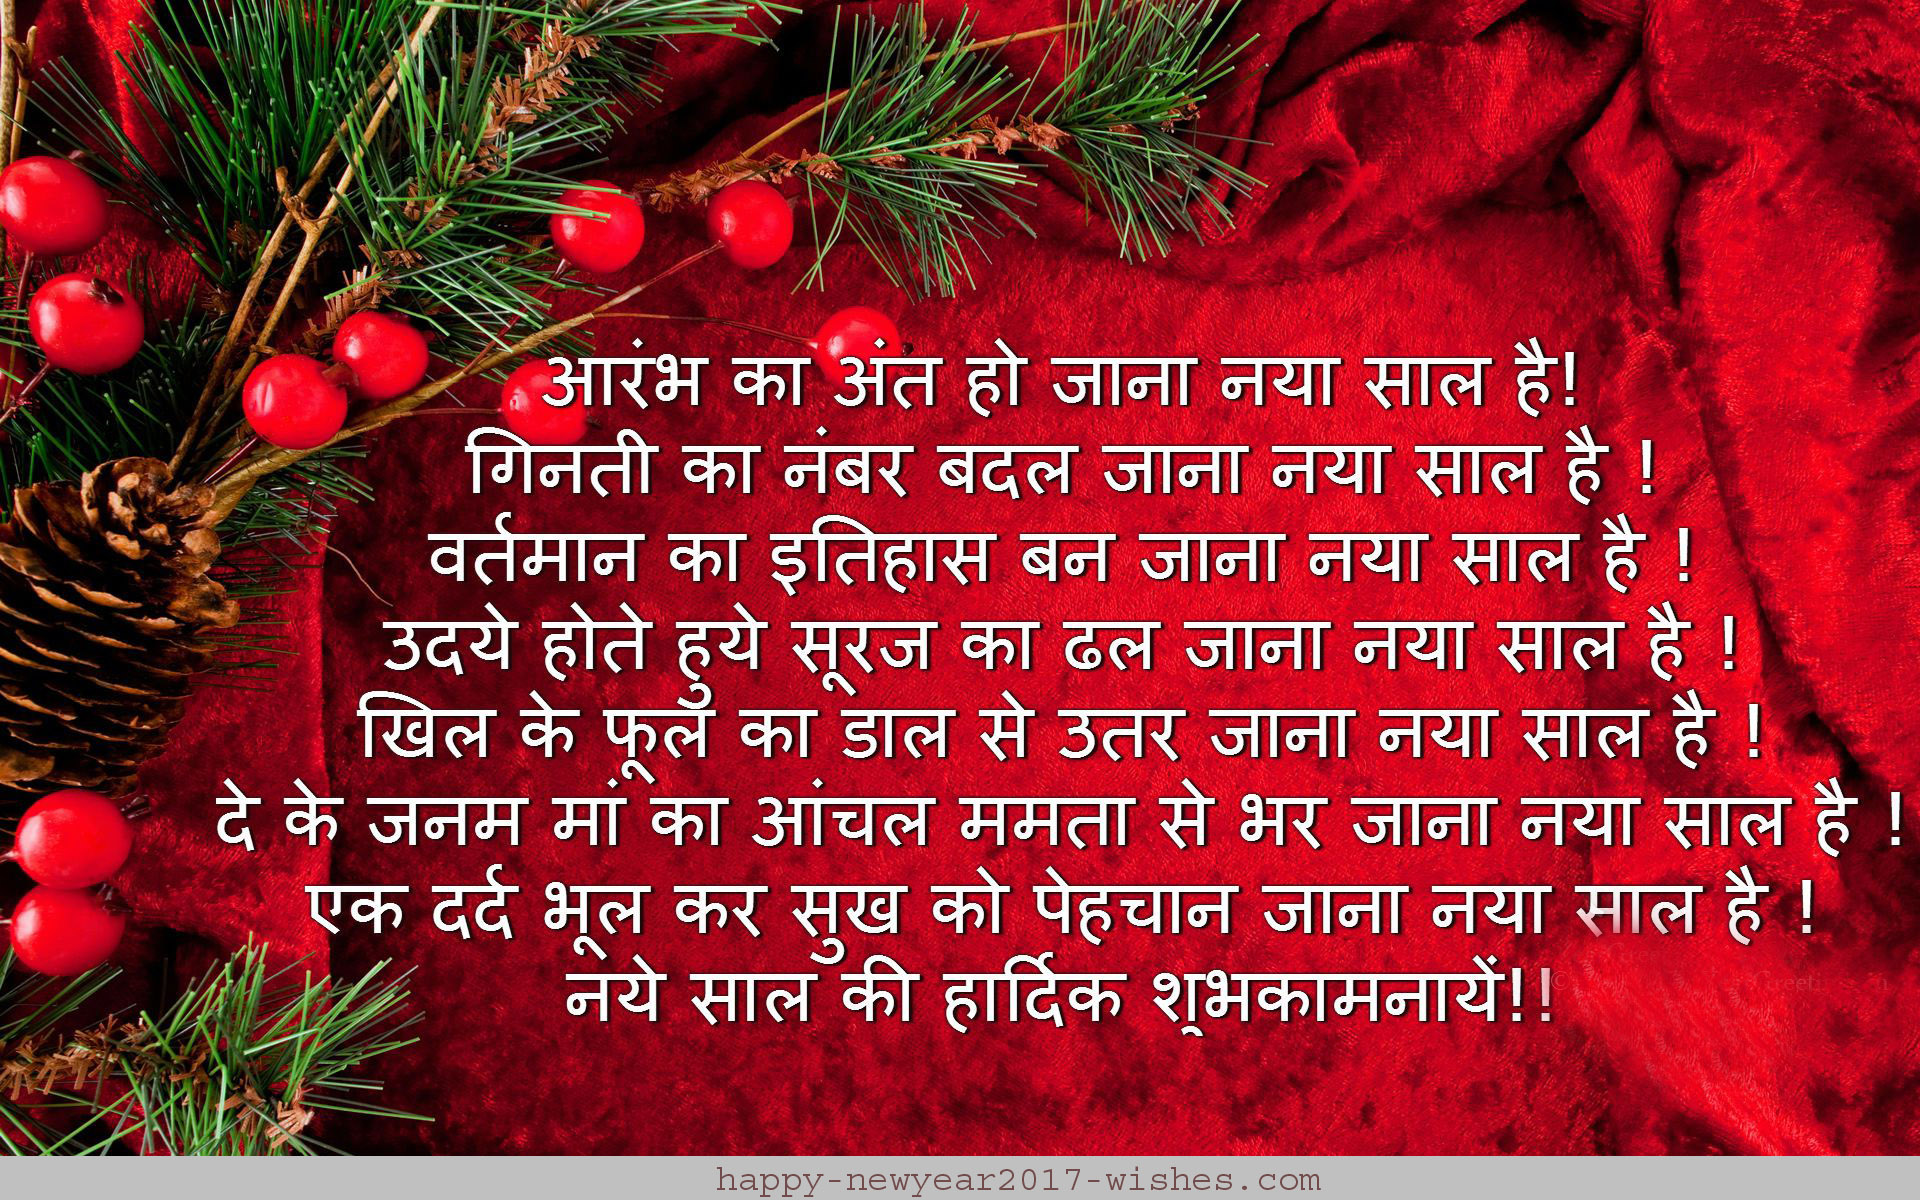 Hindi language new year messages merry christmas and happy new hindi language new year messages kristyandbryce Gallery